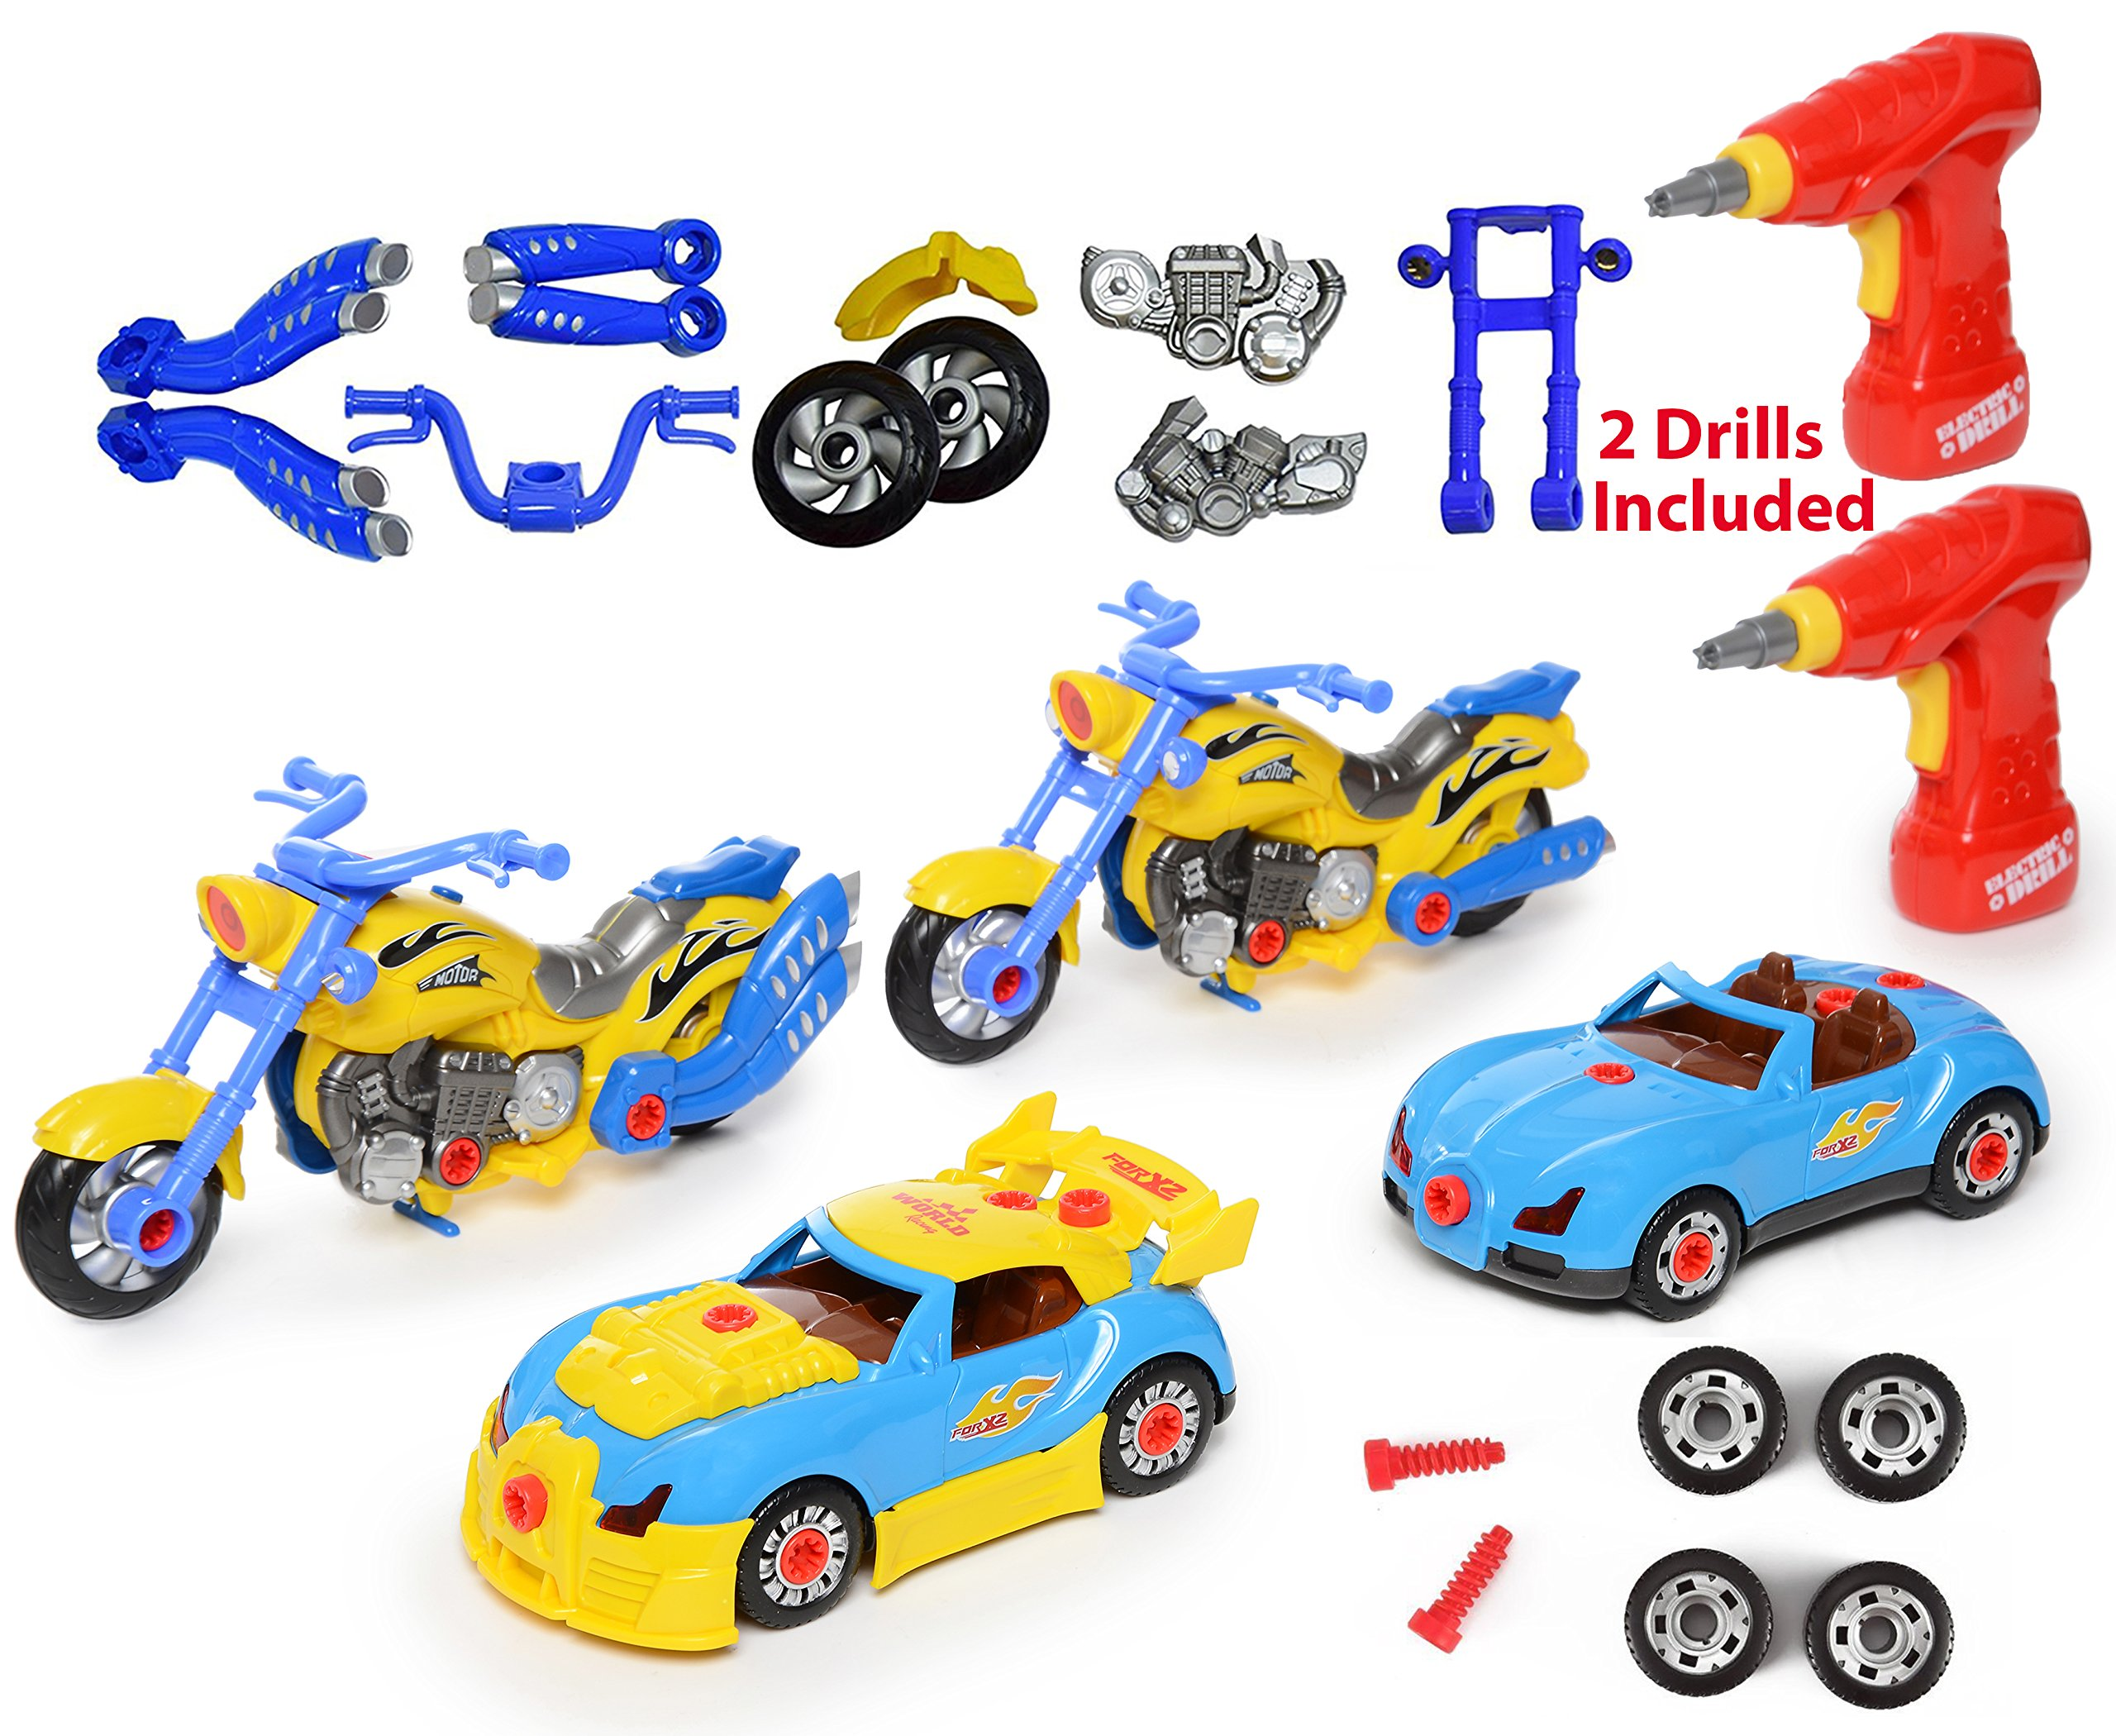 Take Apart Racing CAR MOTORCYCLE Toys Build Your Own Toy with 52